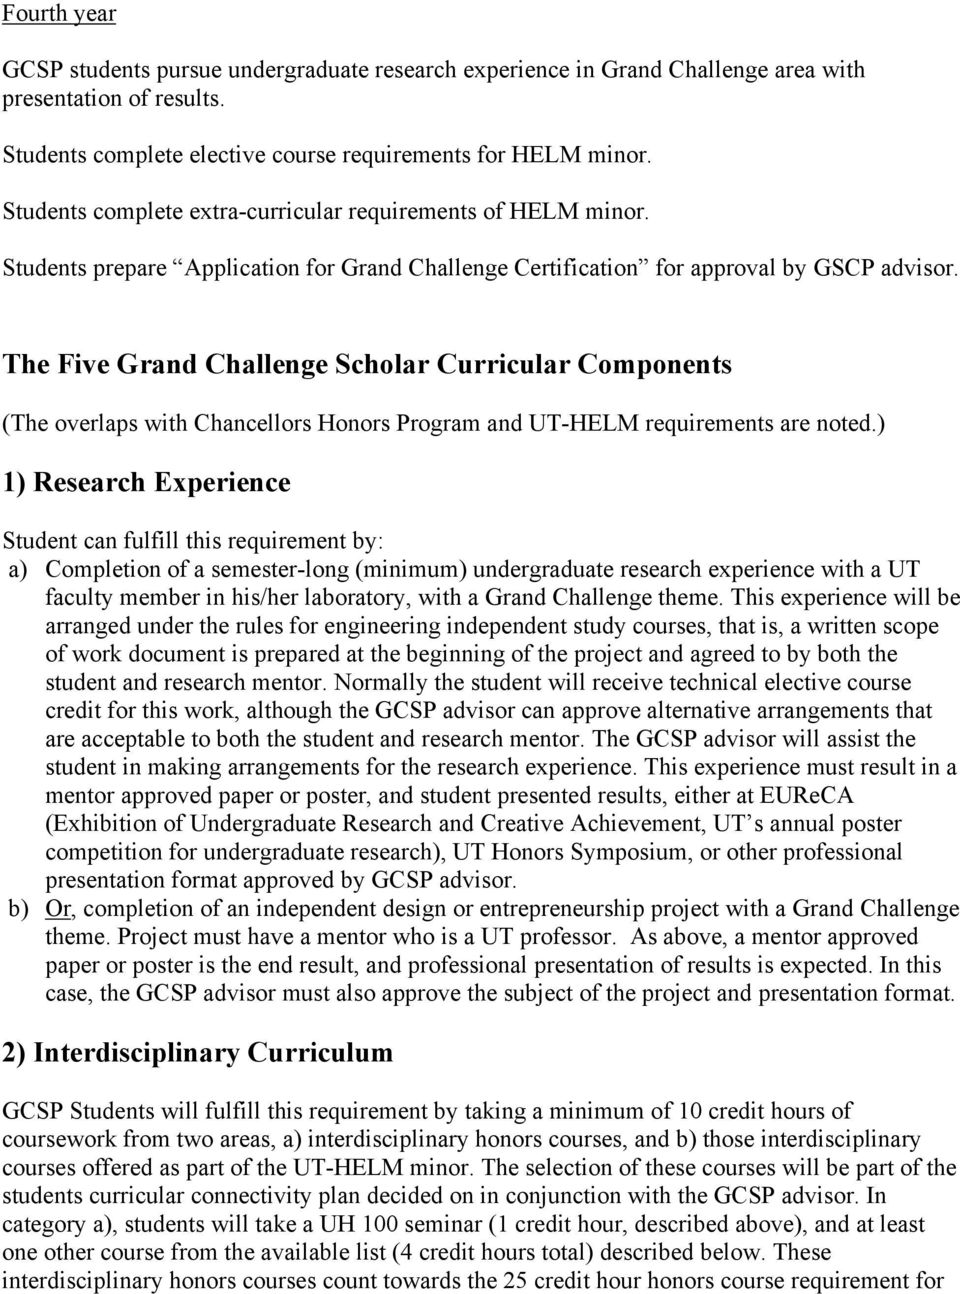 The Five Grand Challenge Scholar Curricular Components (The overlaps with Chancellors Honors Program and UT-HELM requirements are noted.